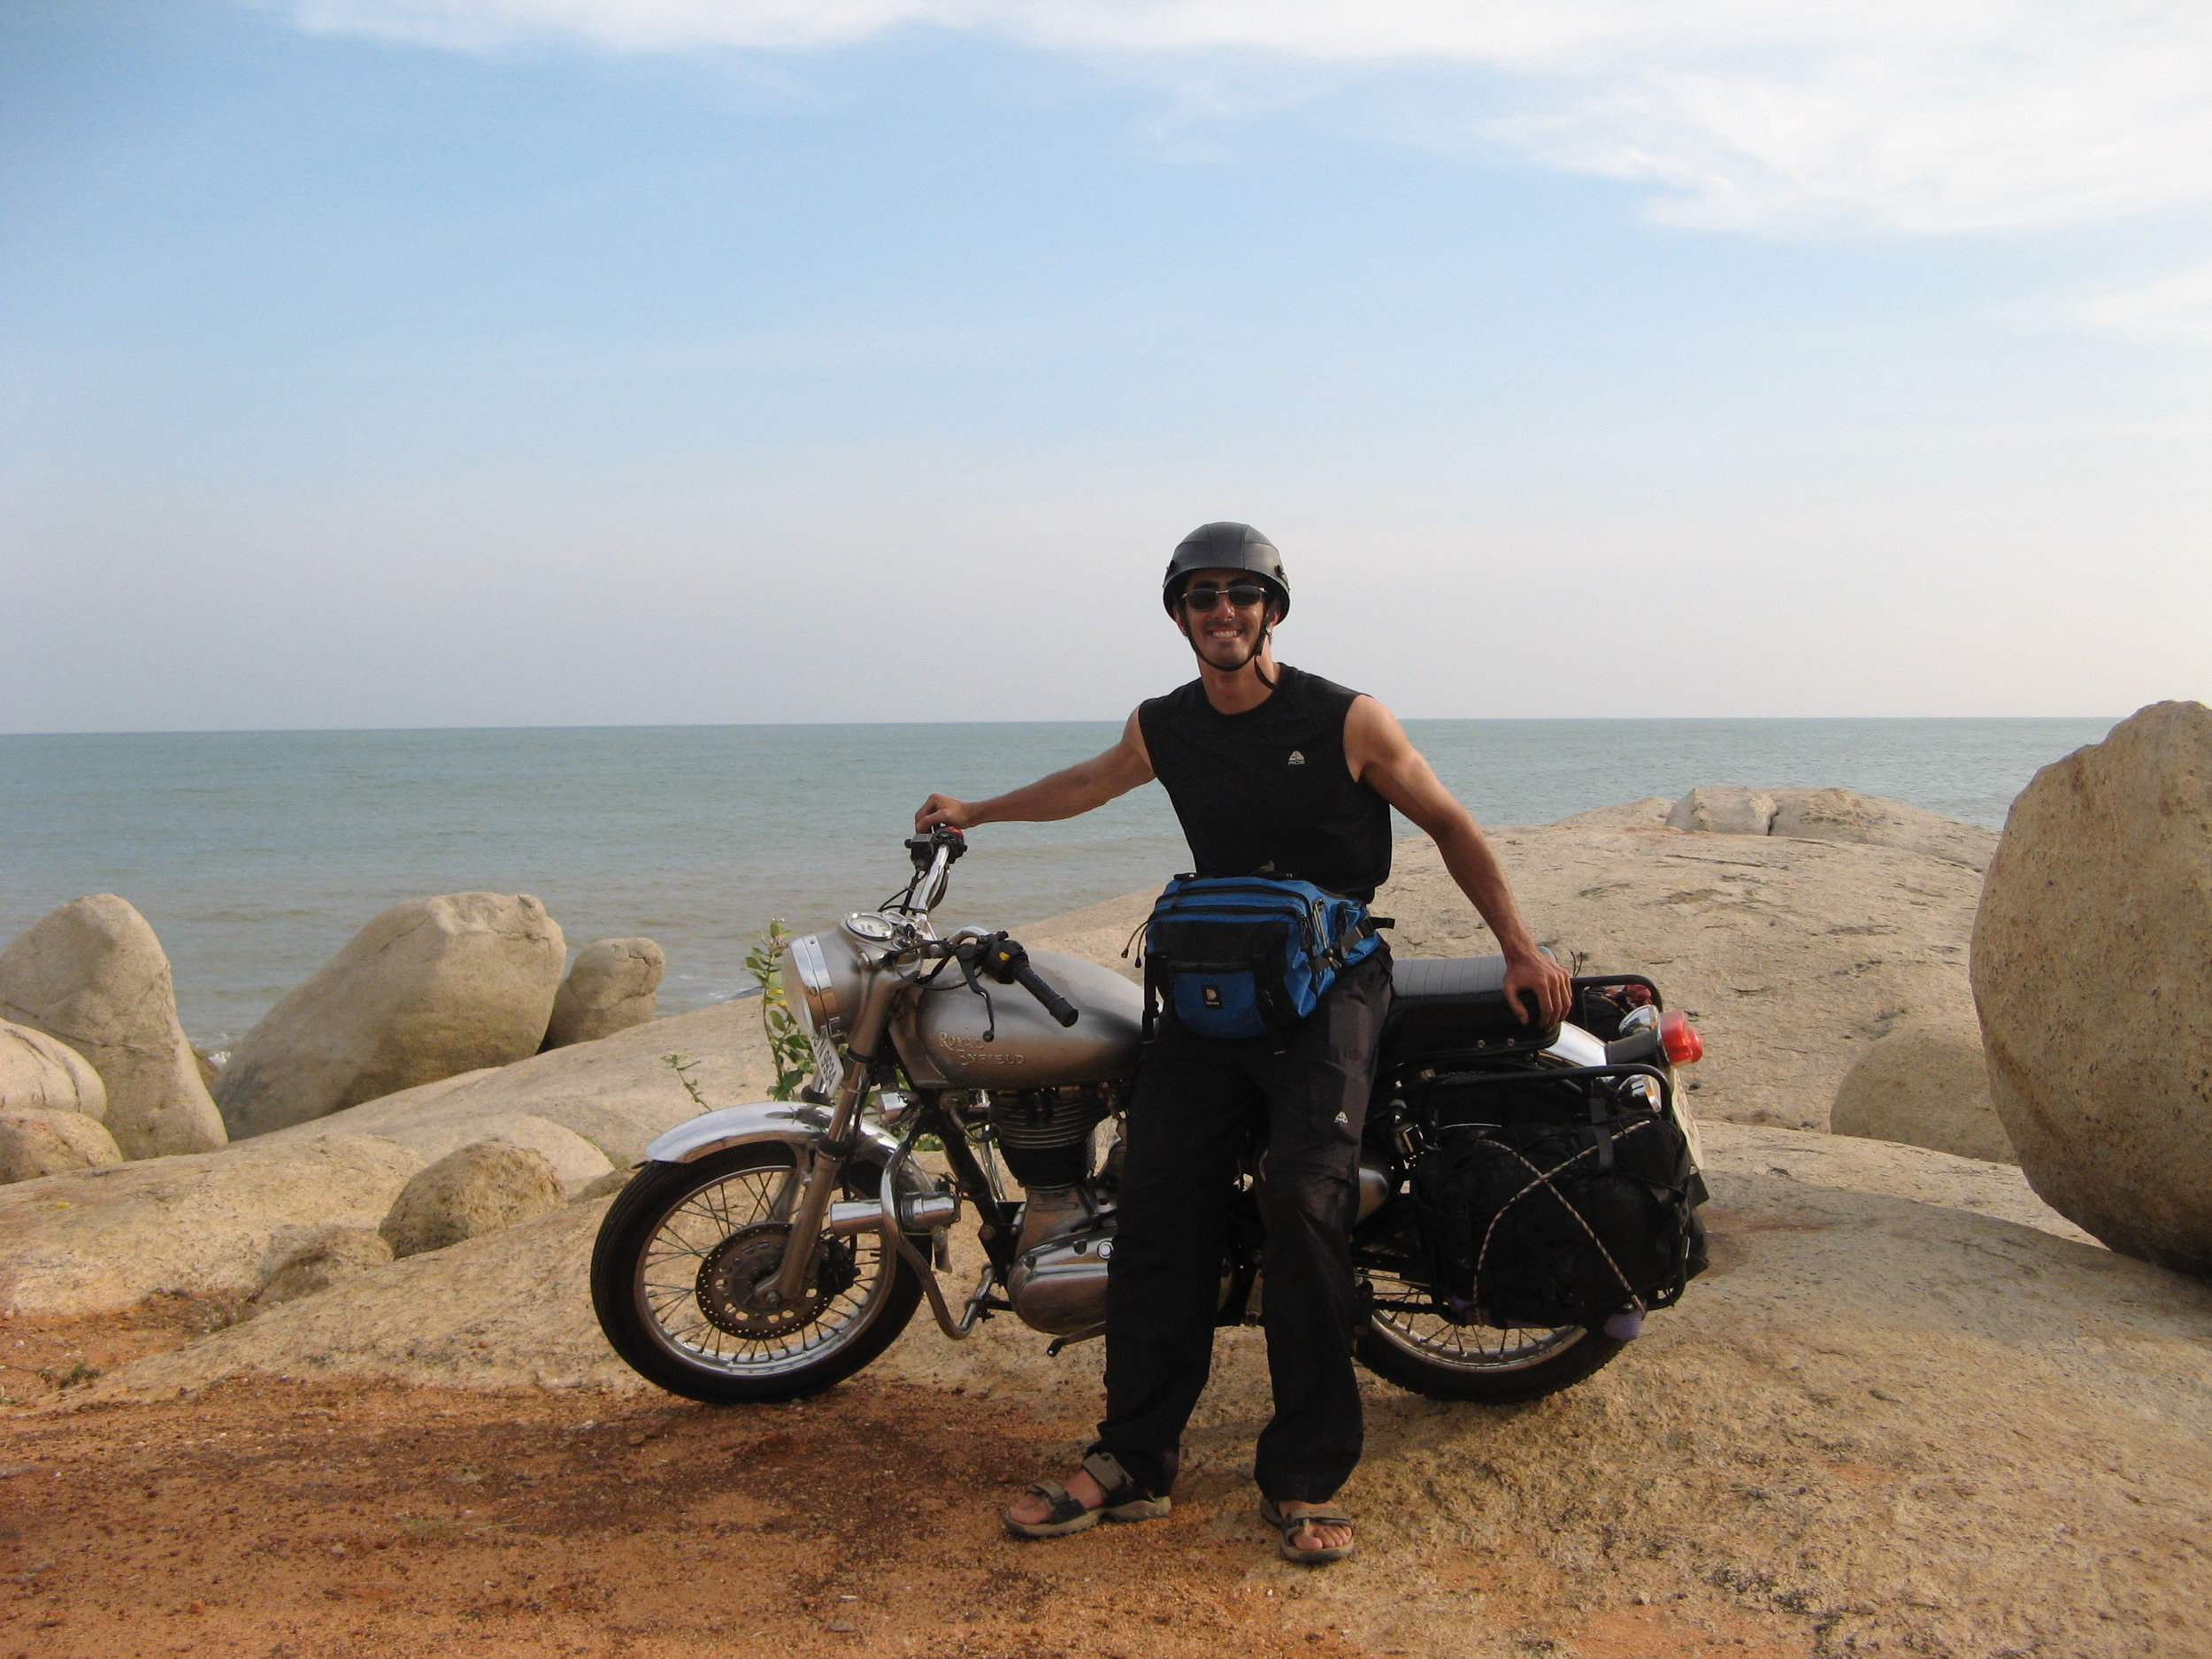 Andrew-Benfield-Adventure-Rider-Radio-Motorcycle-Podcast-21.jpg